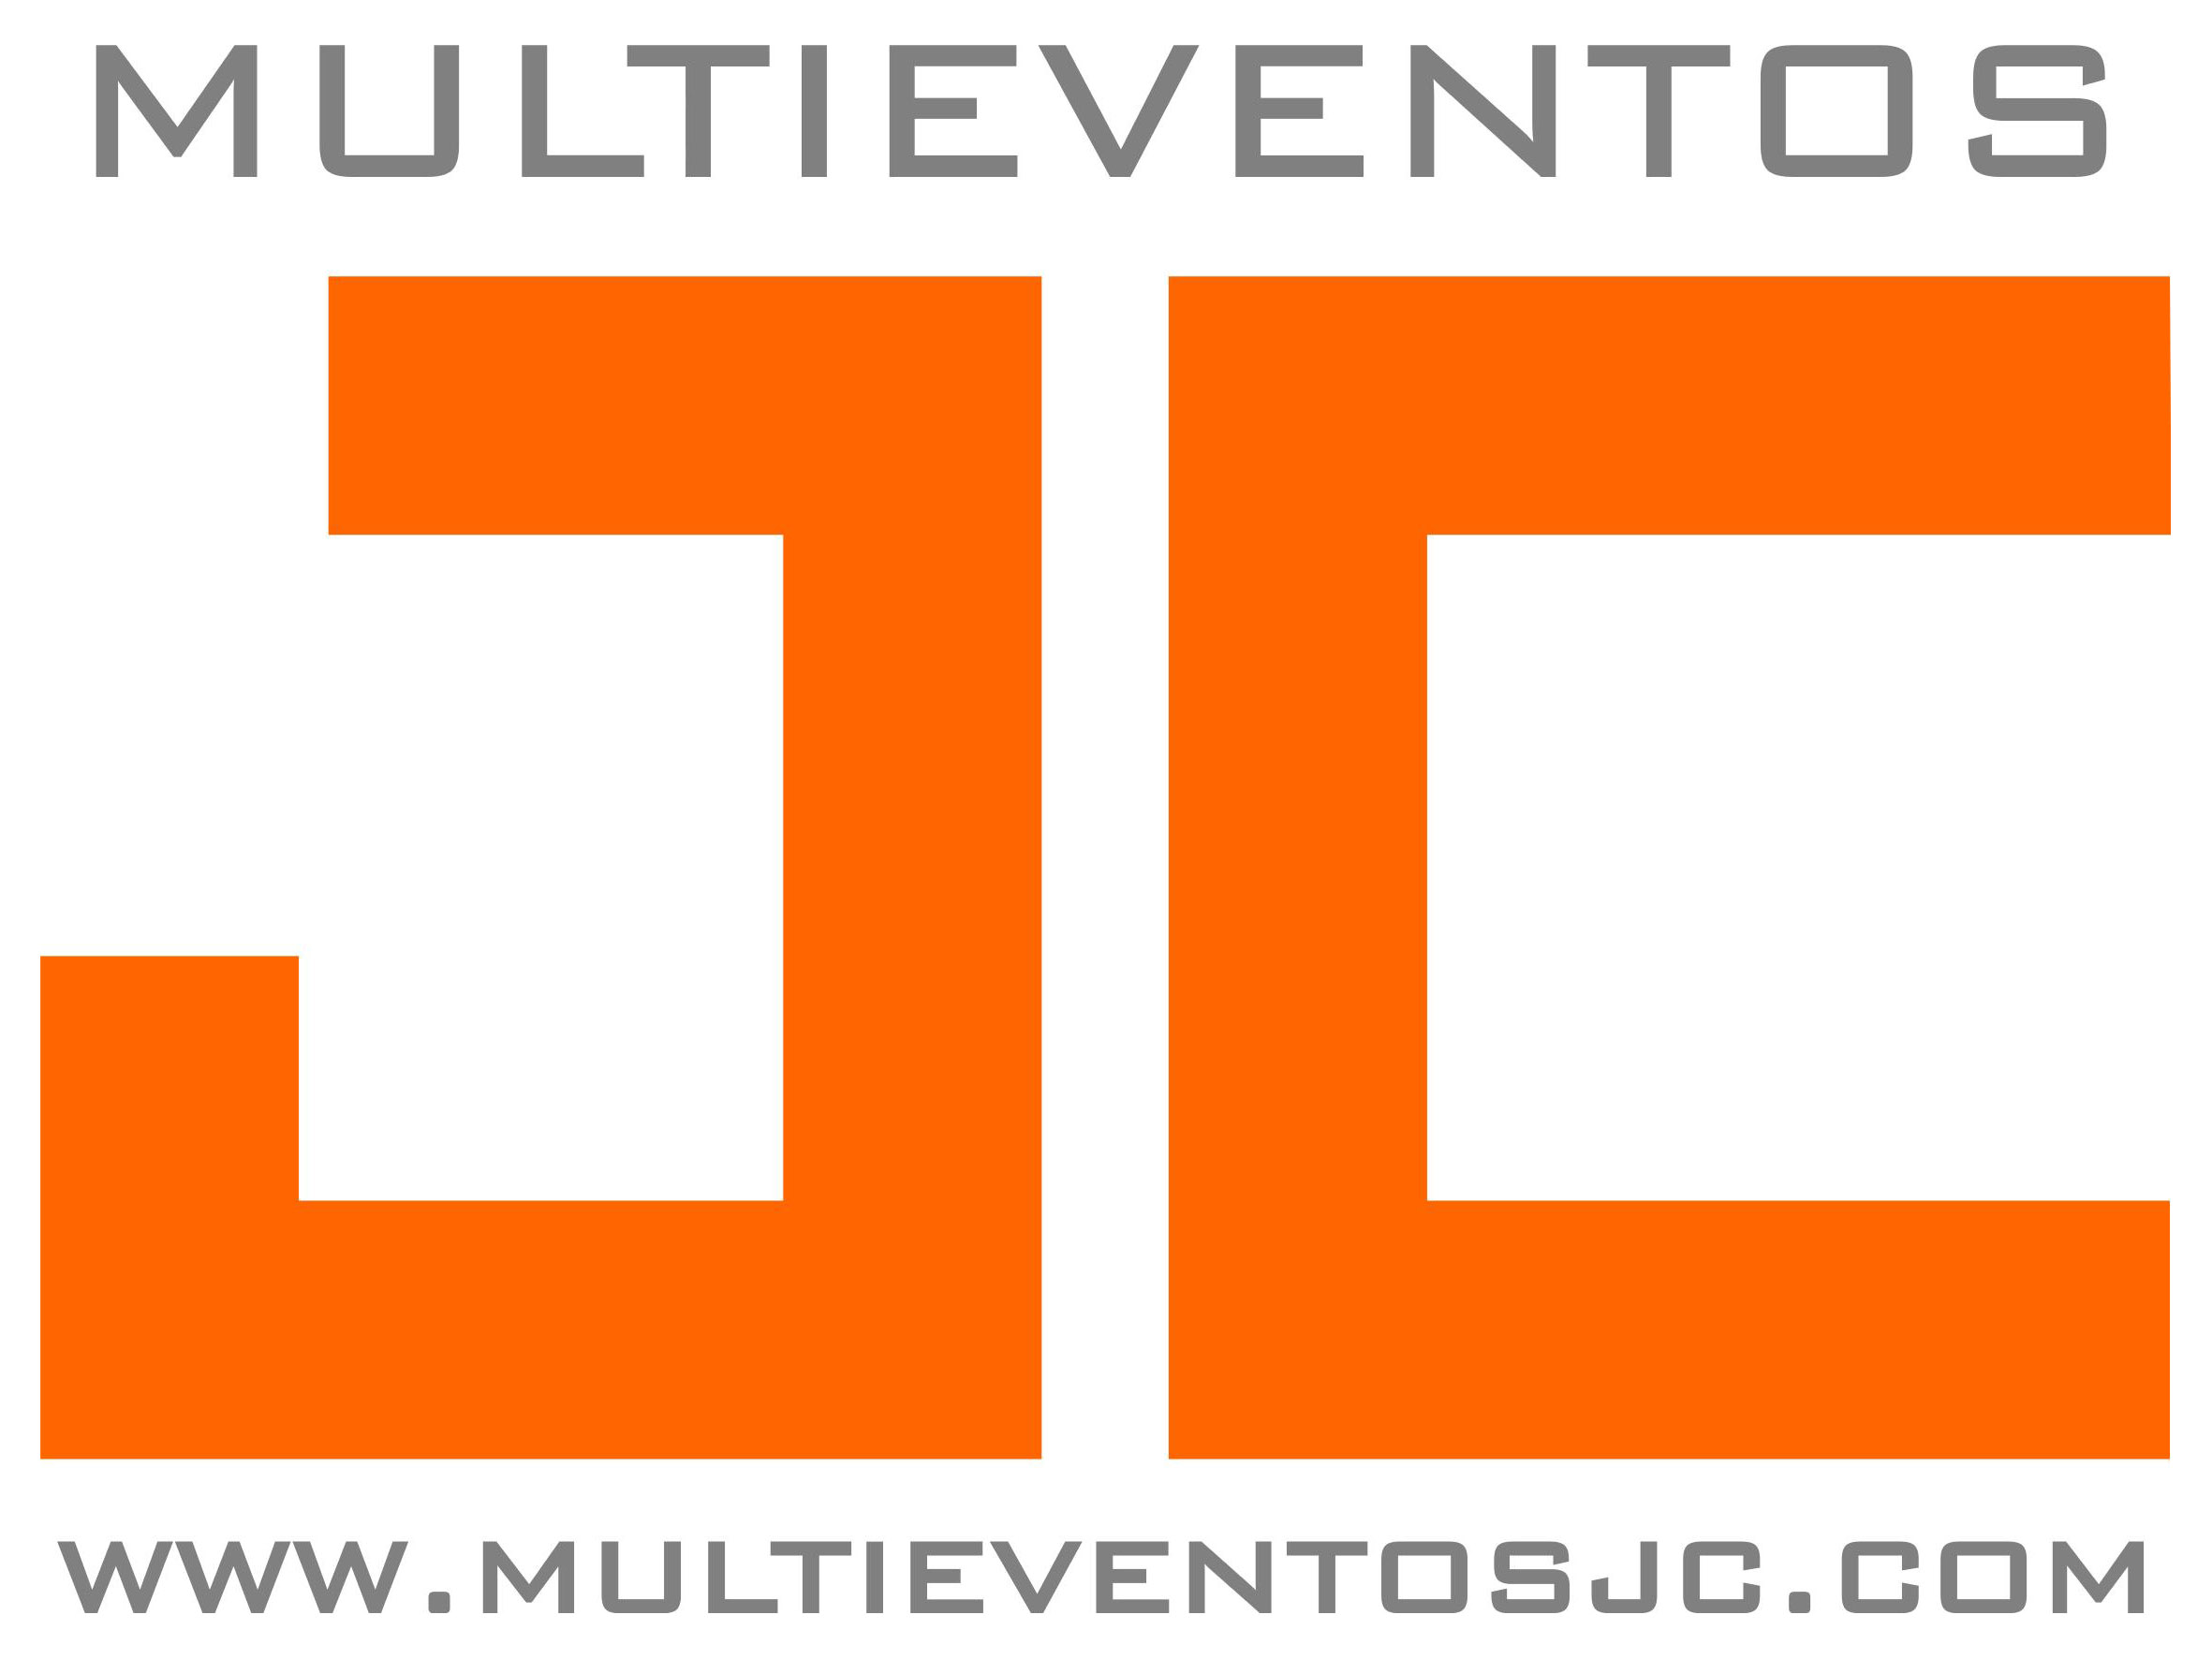 Multieventos JC